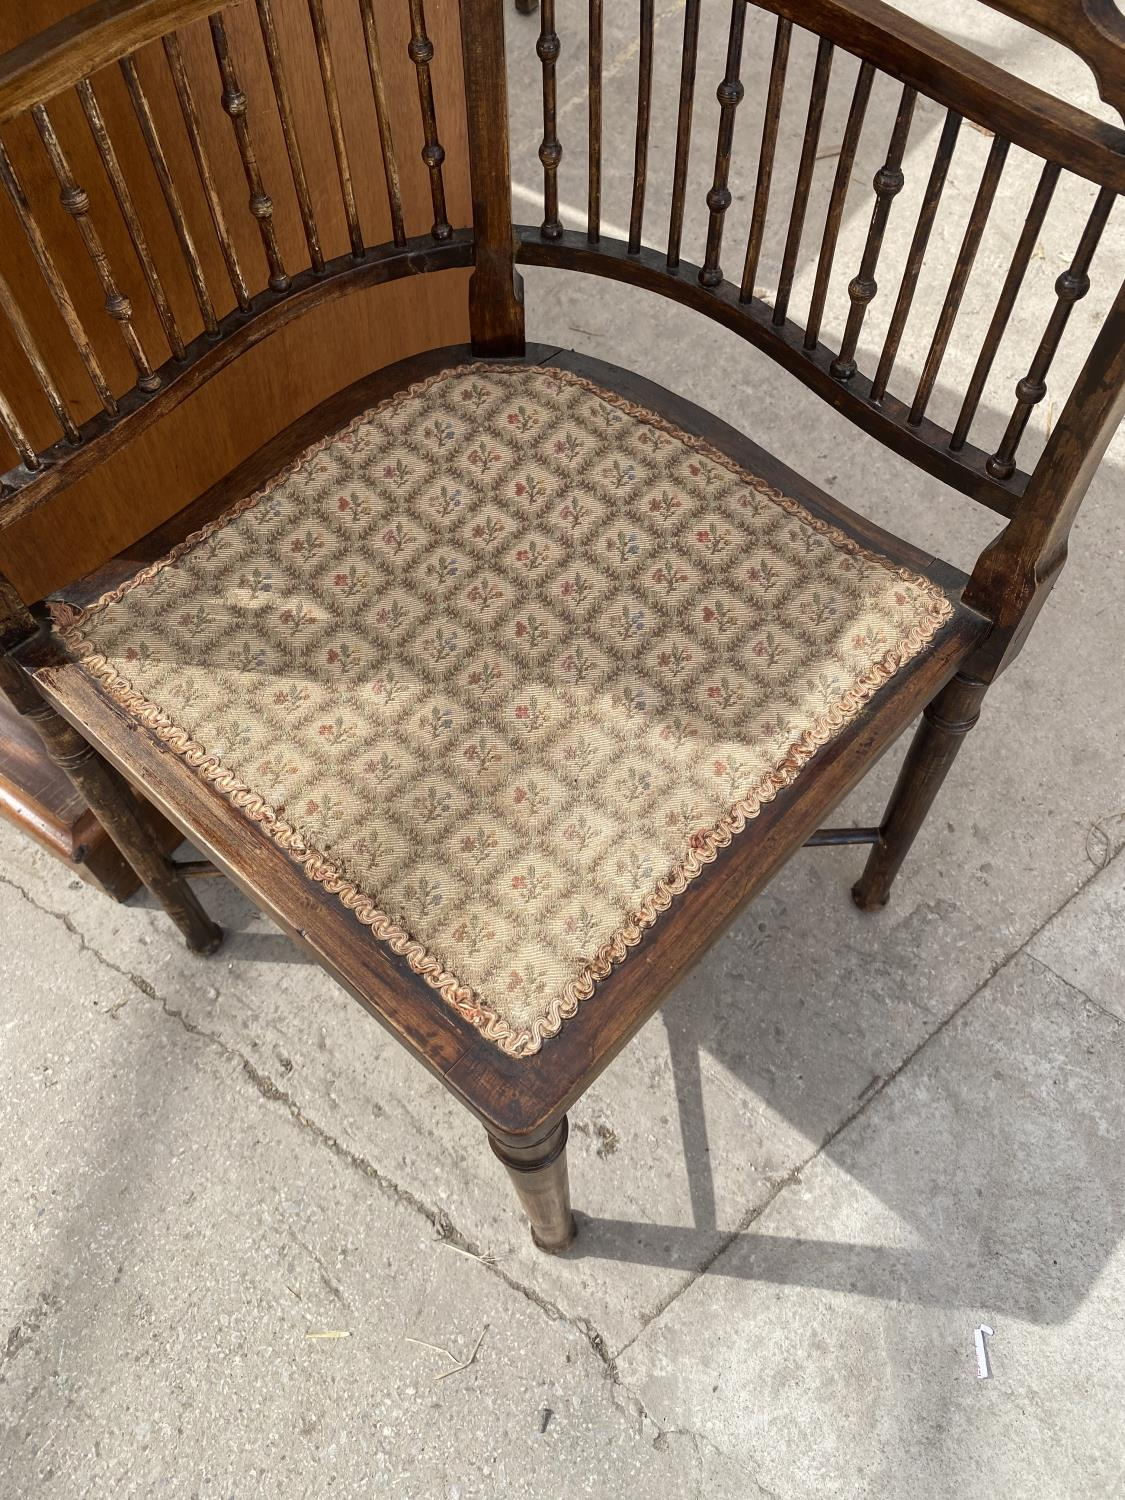 AN EDWARDIAN BEECH CORNER CHAIR WITH TURNED BACK SPINDLE - Image 5 of 5